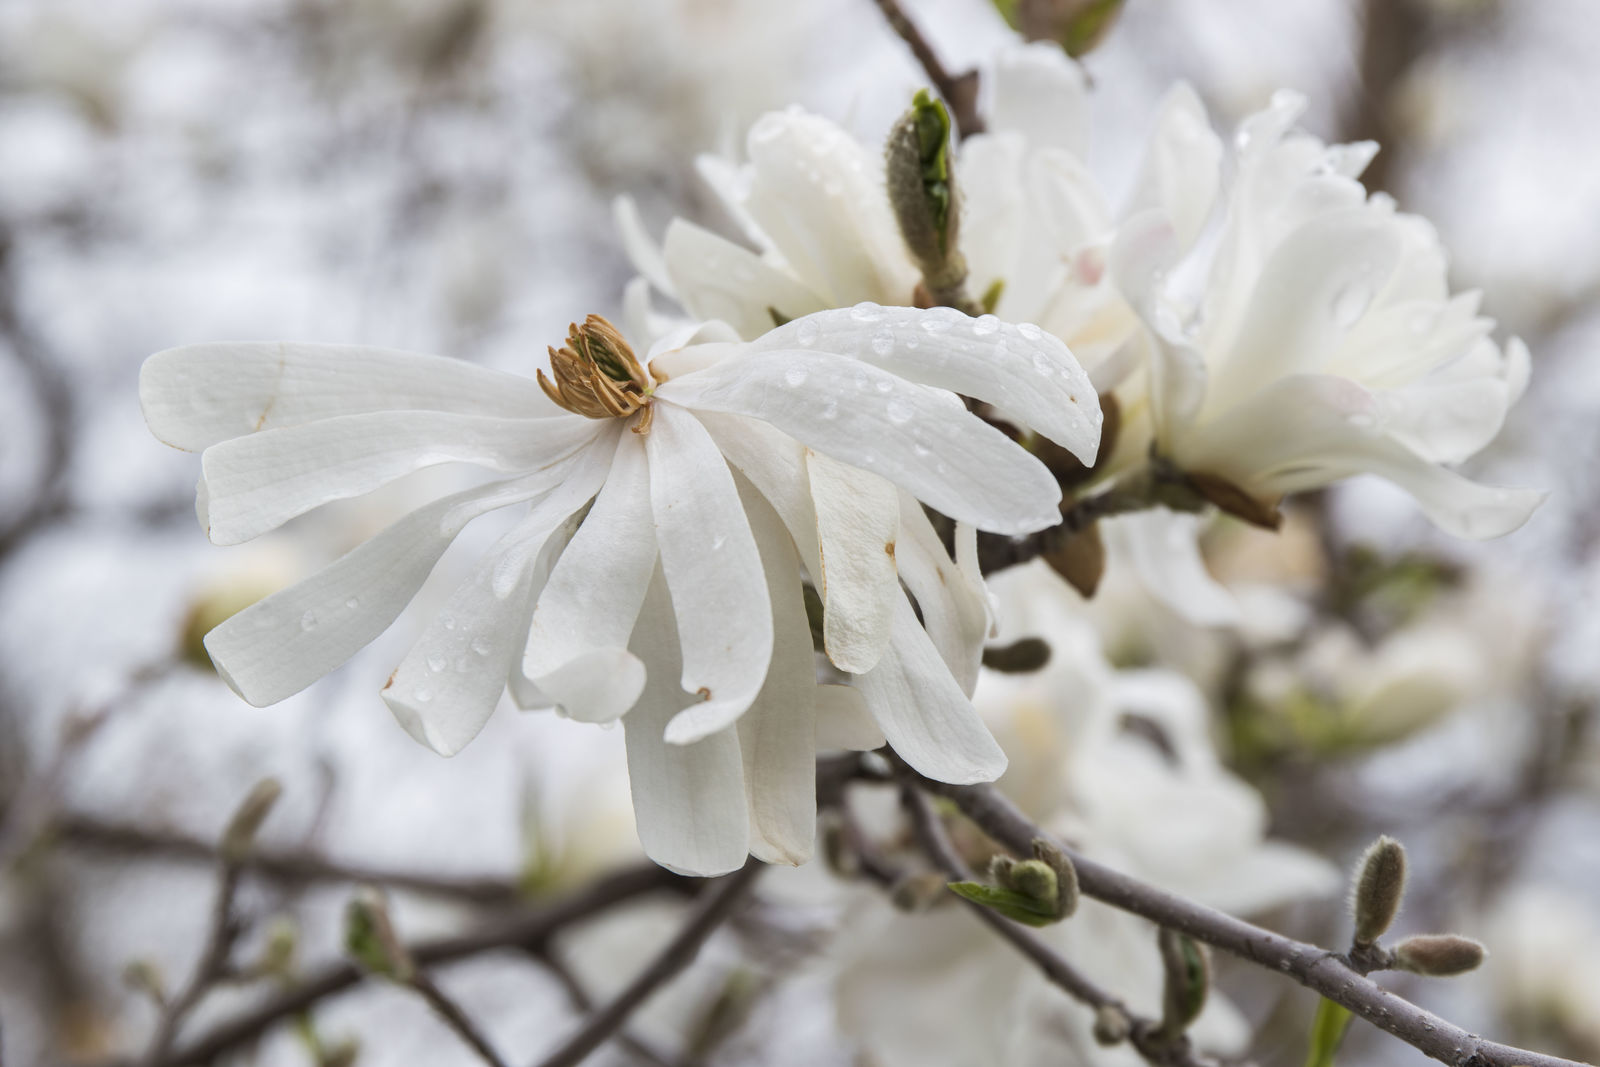 The spring bloom has begun at the Idaho Botanical Gardens. Early season flowers are in full swing and many more are ready to blossom. (Photos by Axel Quartarone){ }